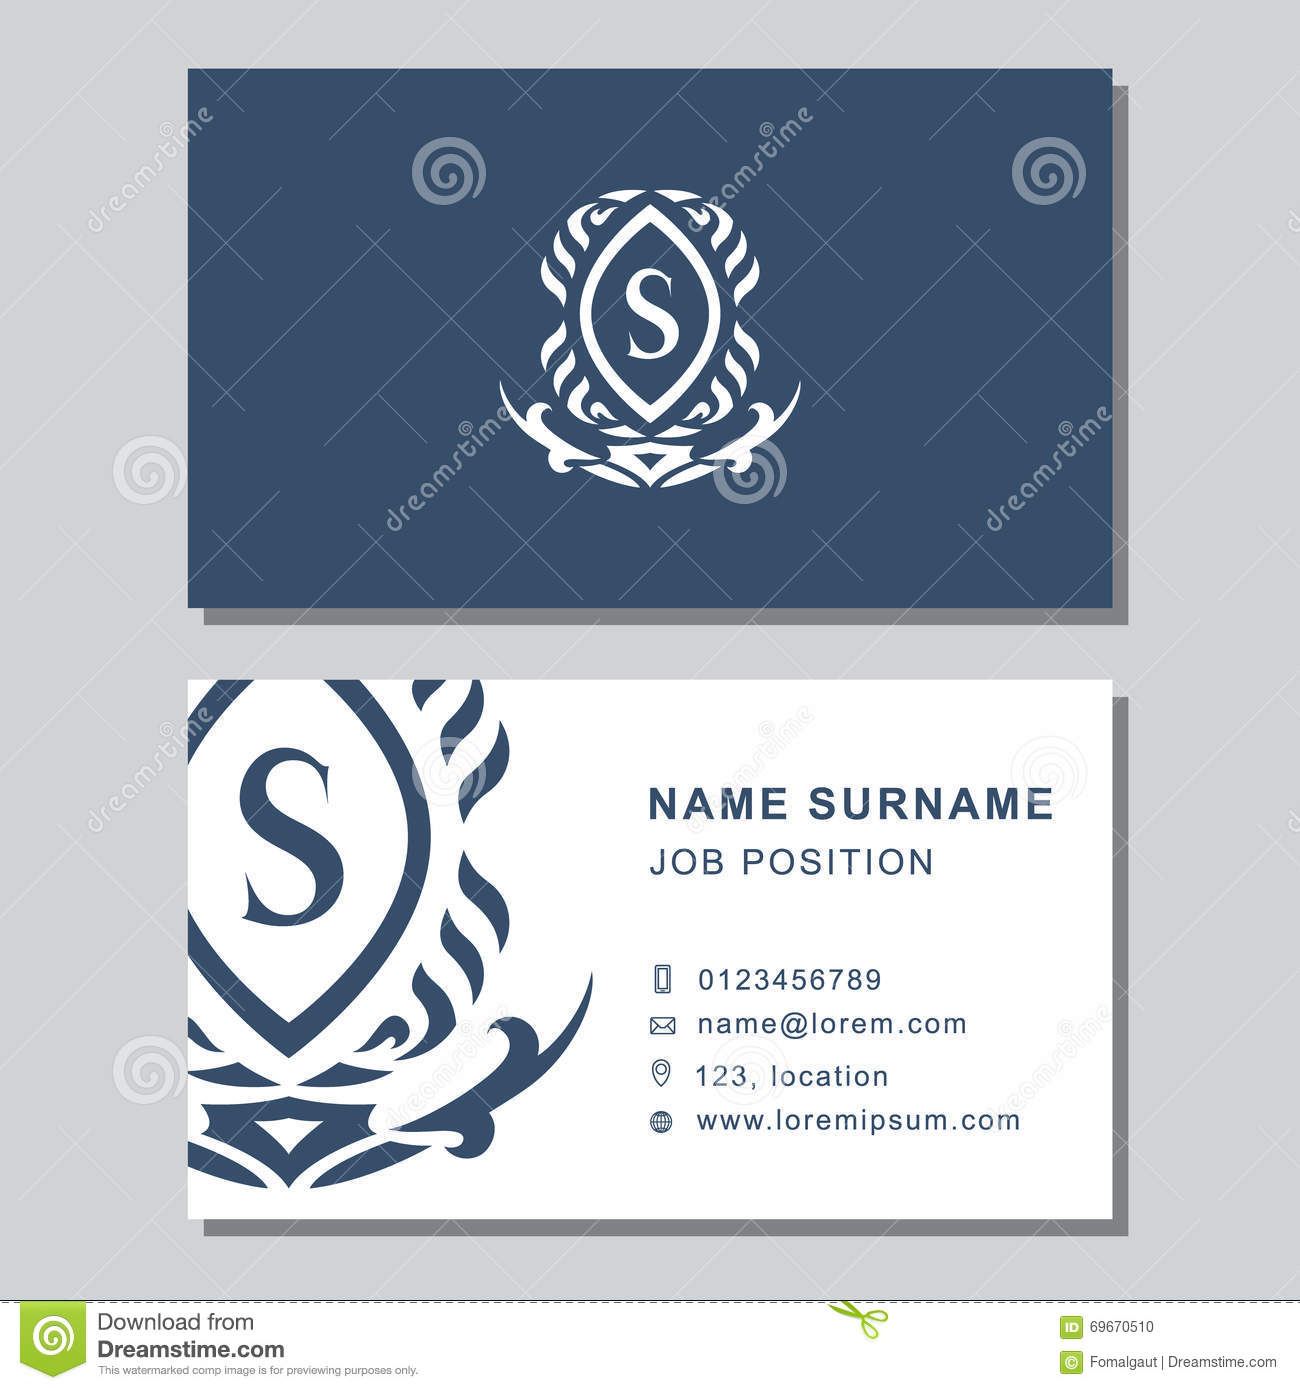 Business Card Template With Abstract Monogram Design